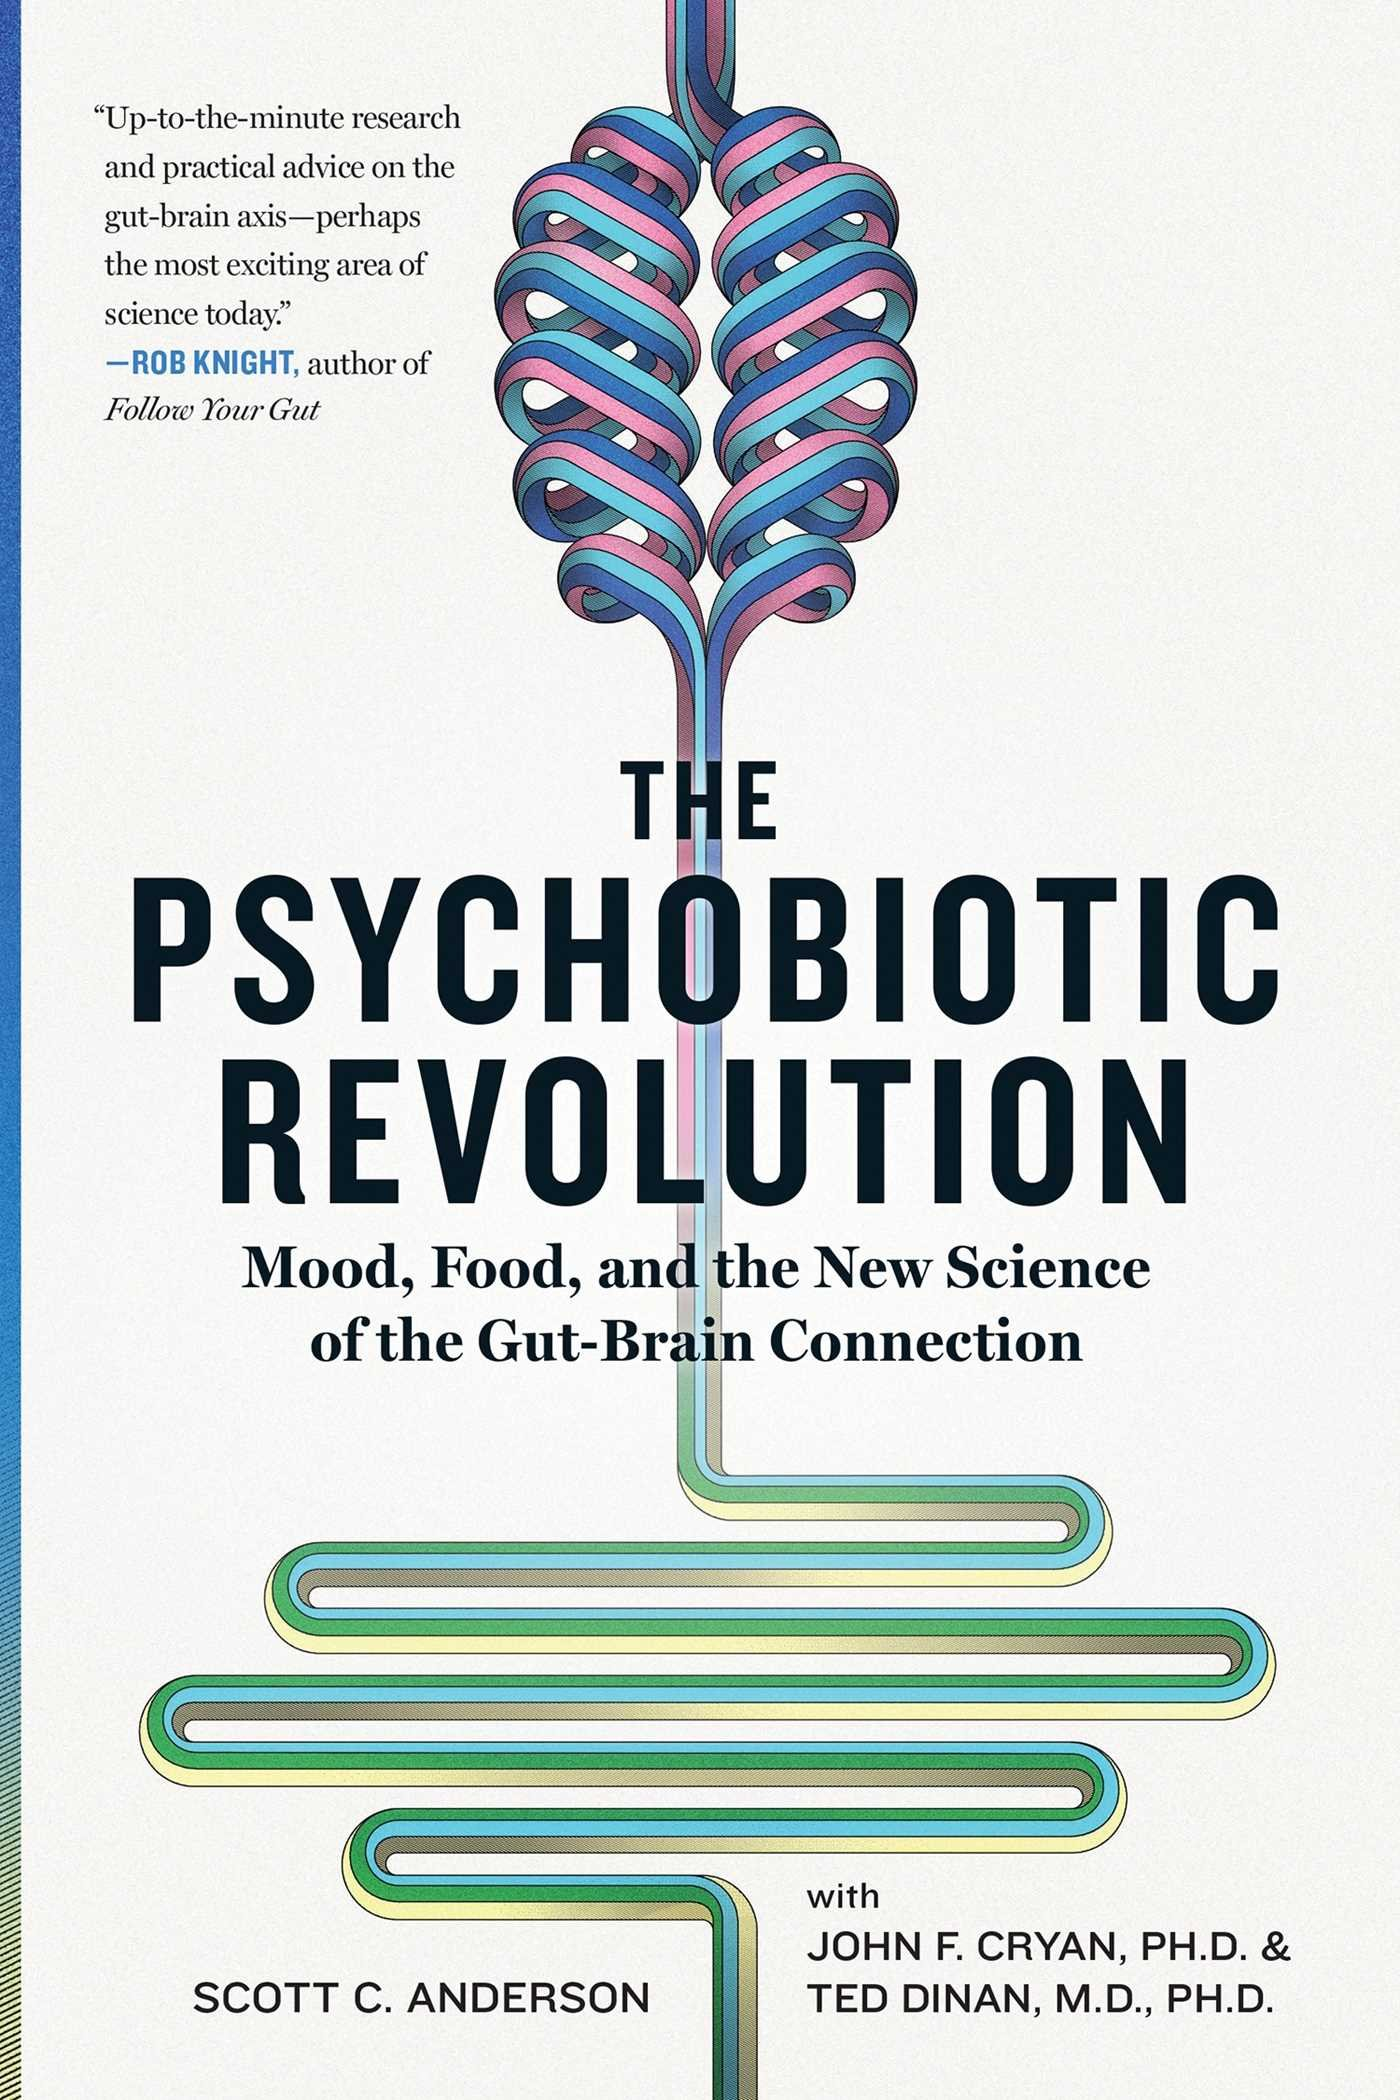 Image OfThe Psychobiotic Revolution: Mood, Food, And The New Science Of The Gut-Brain Connection